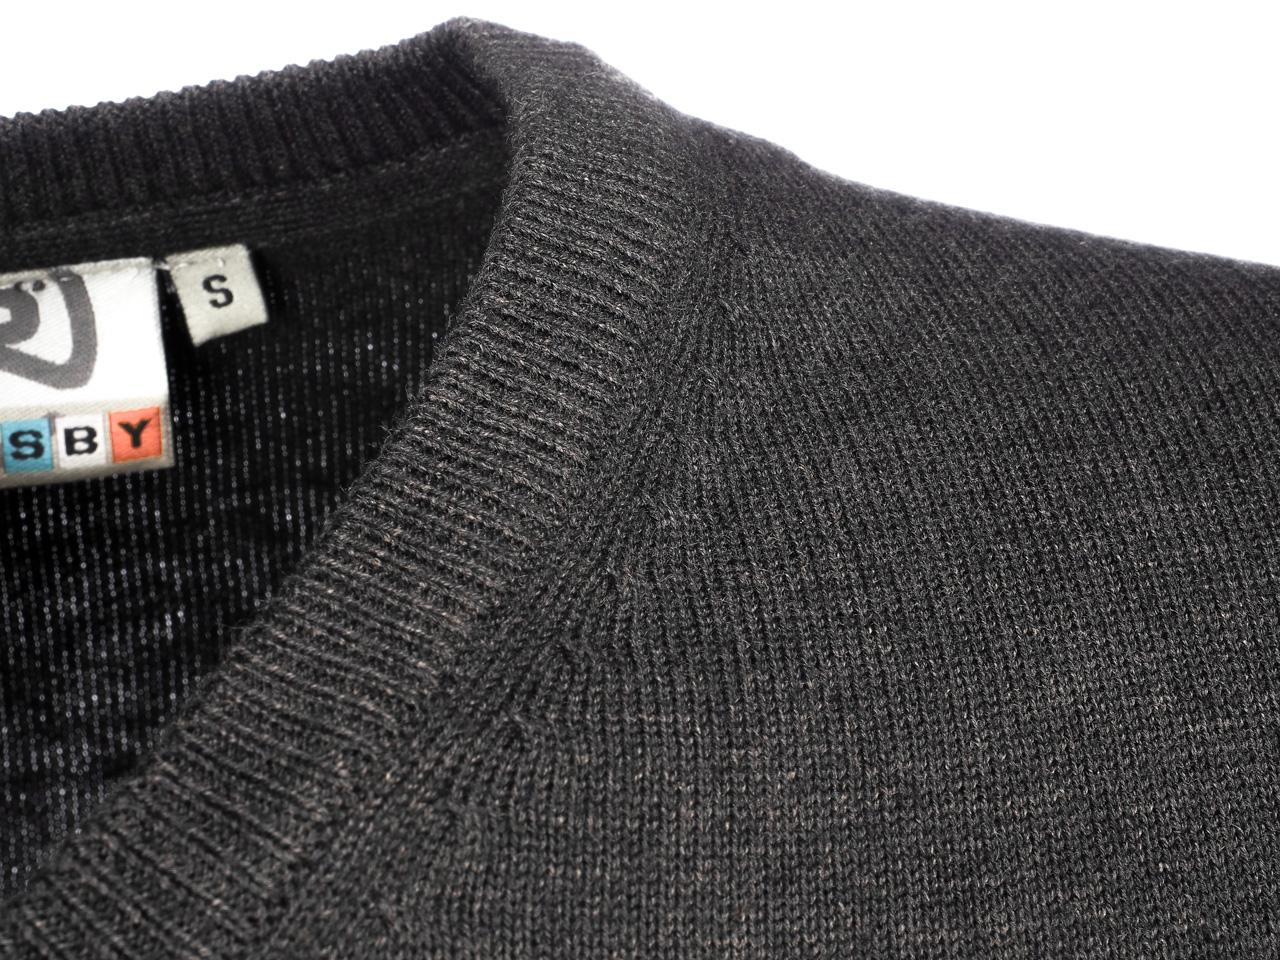 Sweater-Crossby-Twitt-Anc-V-Neck-Sweater-Grey-55732-New thumbnail 3